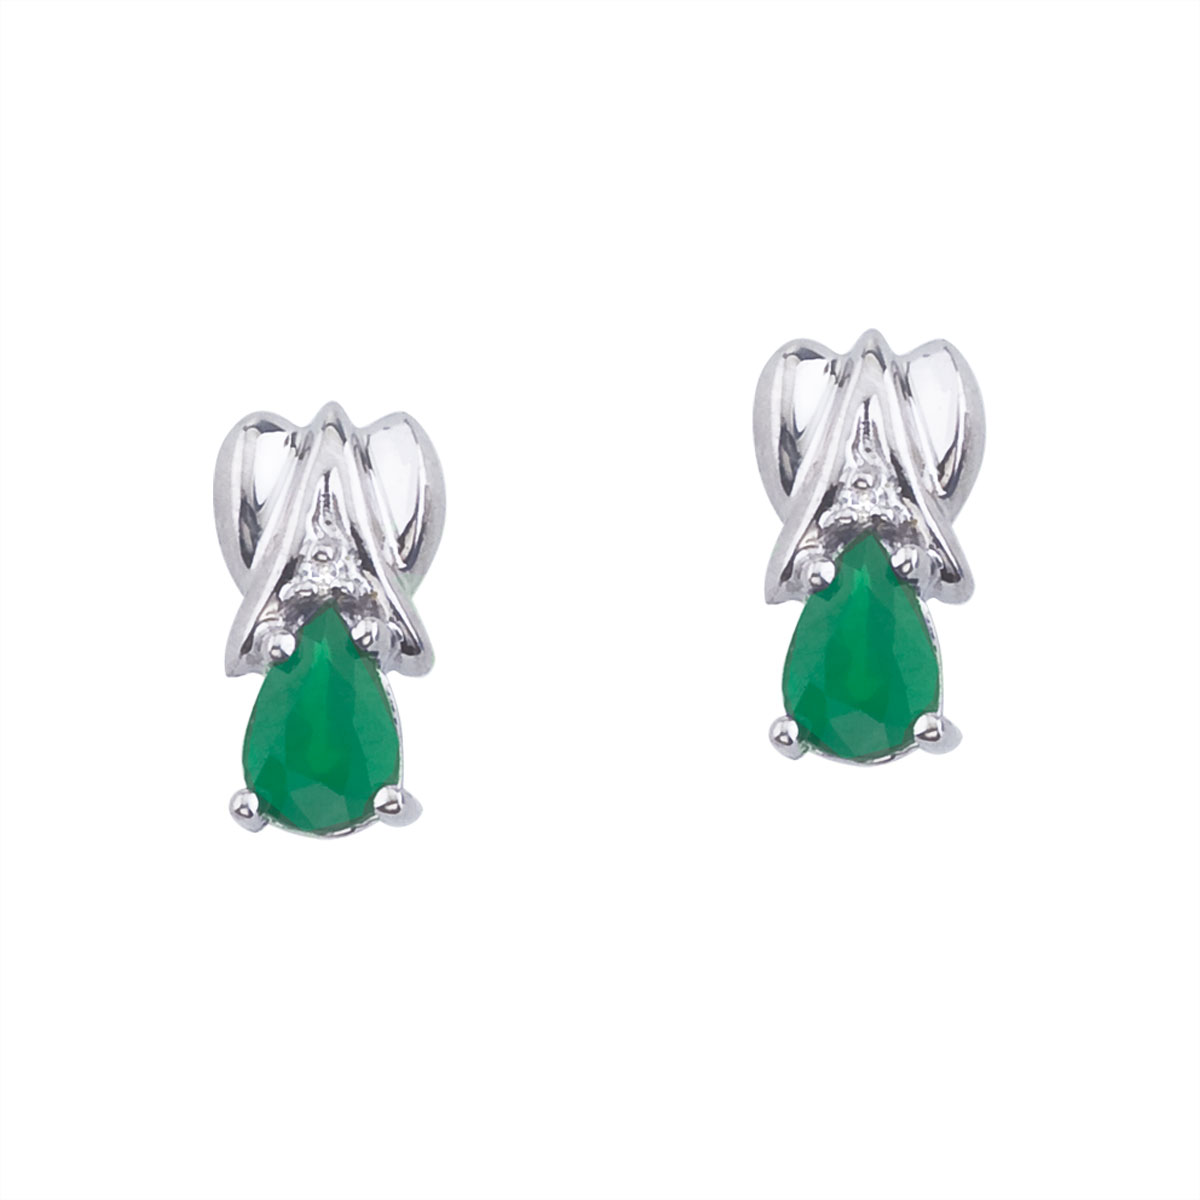 14k White Gold Pear-Shaped Emerald and Diamond Stud Earrings